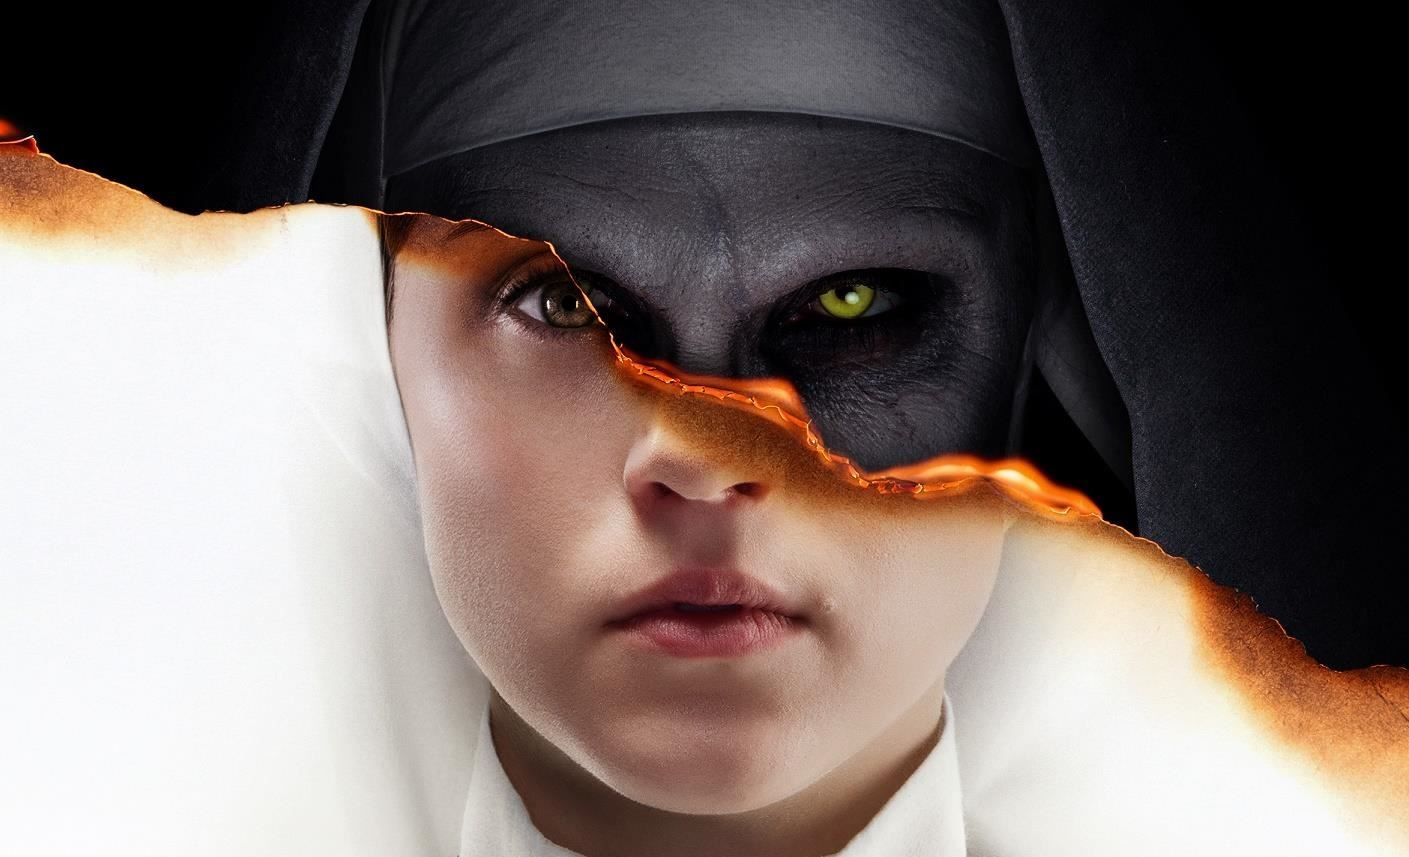 The Nun Full Movie Bluray English Sub Dual Audio